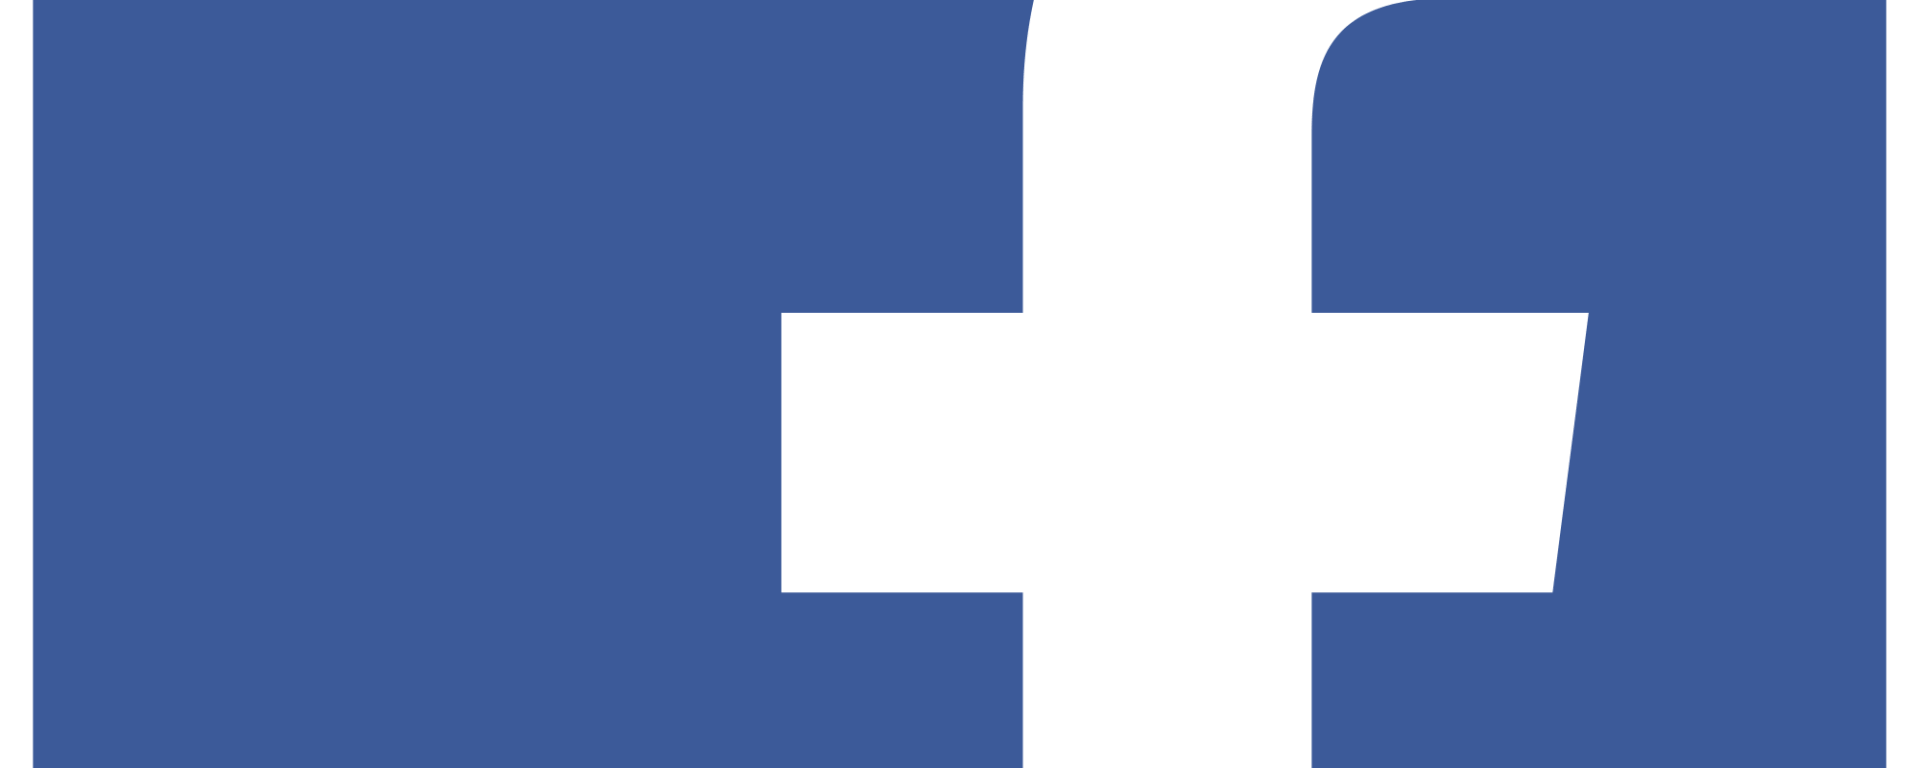 Facebook is a corporation and a social networking company with a current net worth of $322.01 billion.